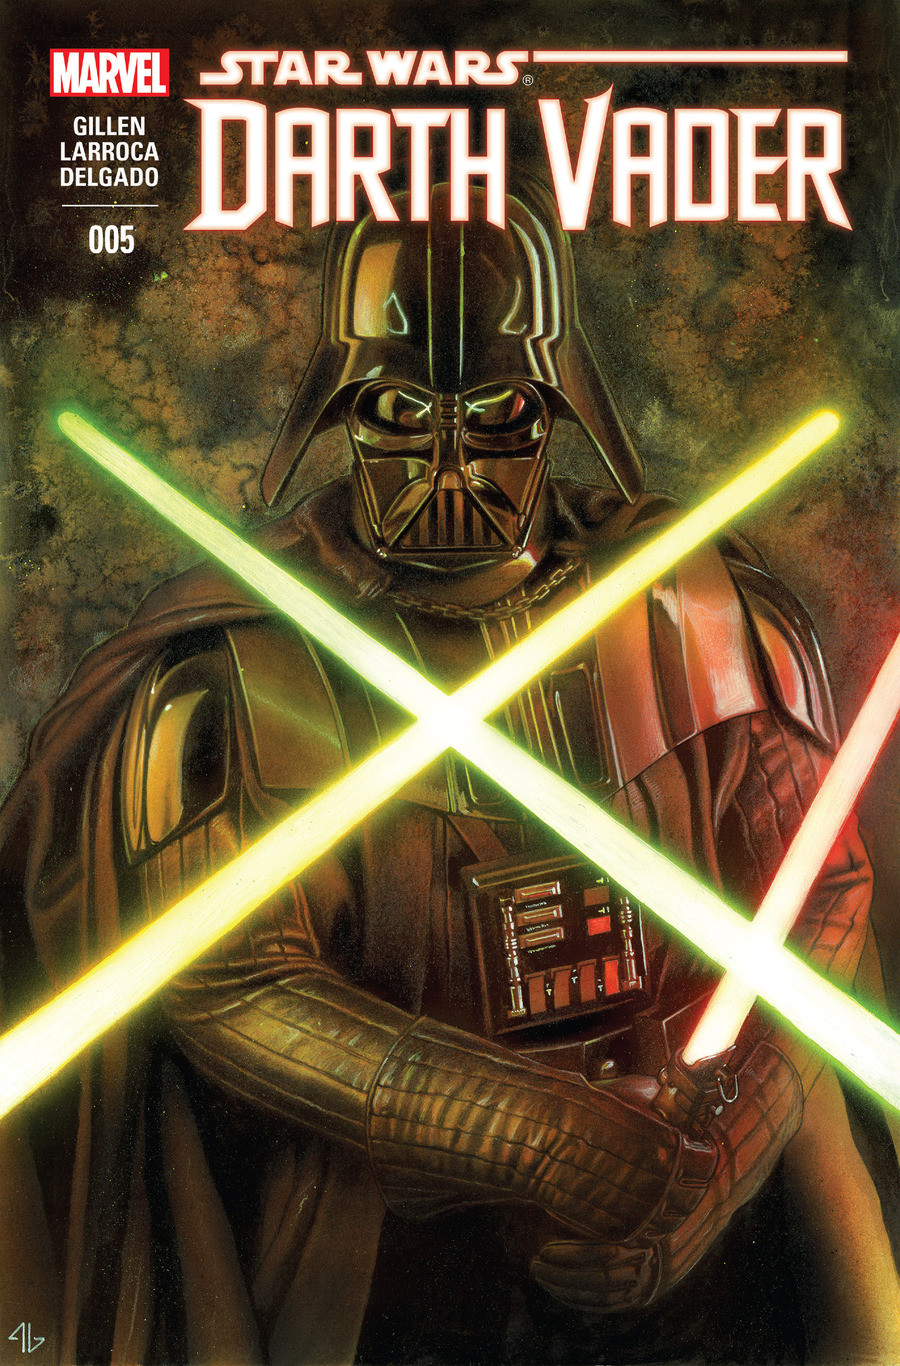 Star Wars Darth Vader issue 5. join list: StarWarsDarthVader (281 subs)Mention History The fifth issue of the canon Darth Vader comic series If you havent read